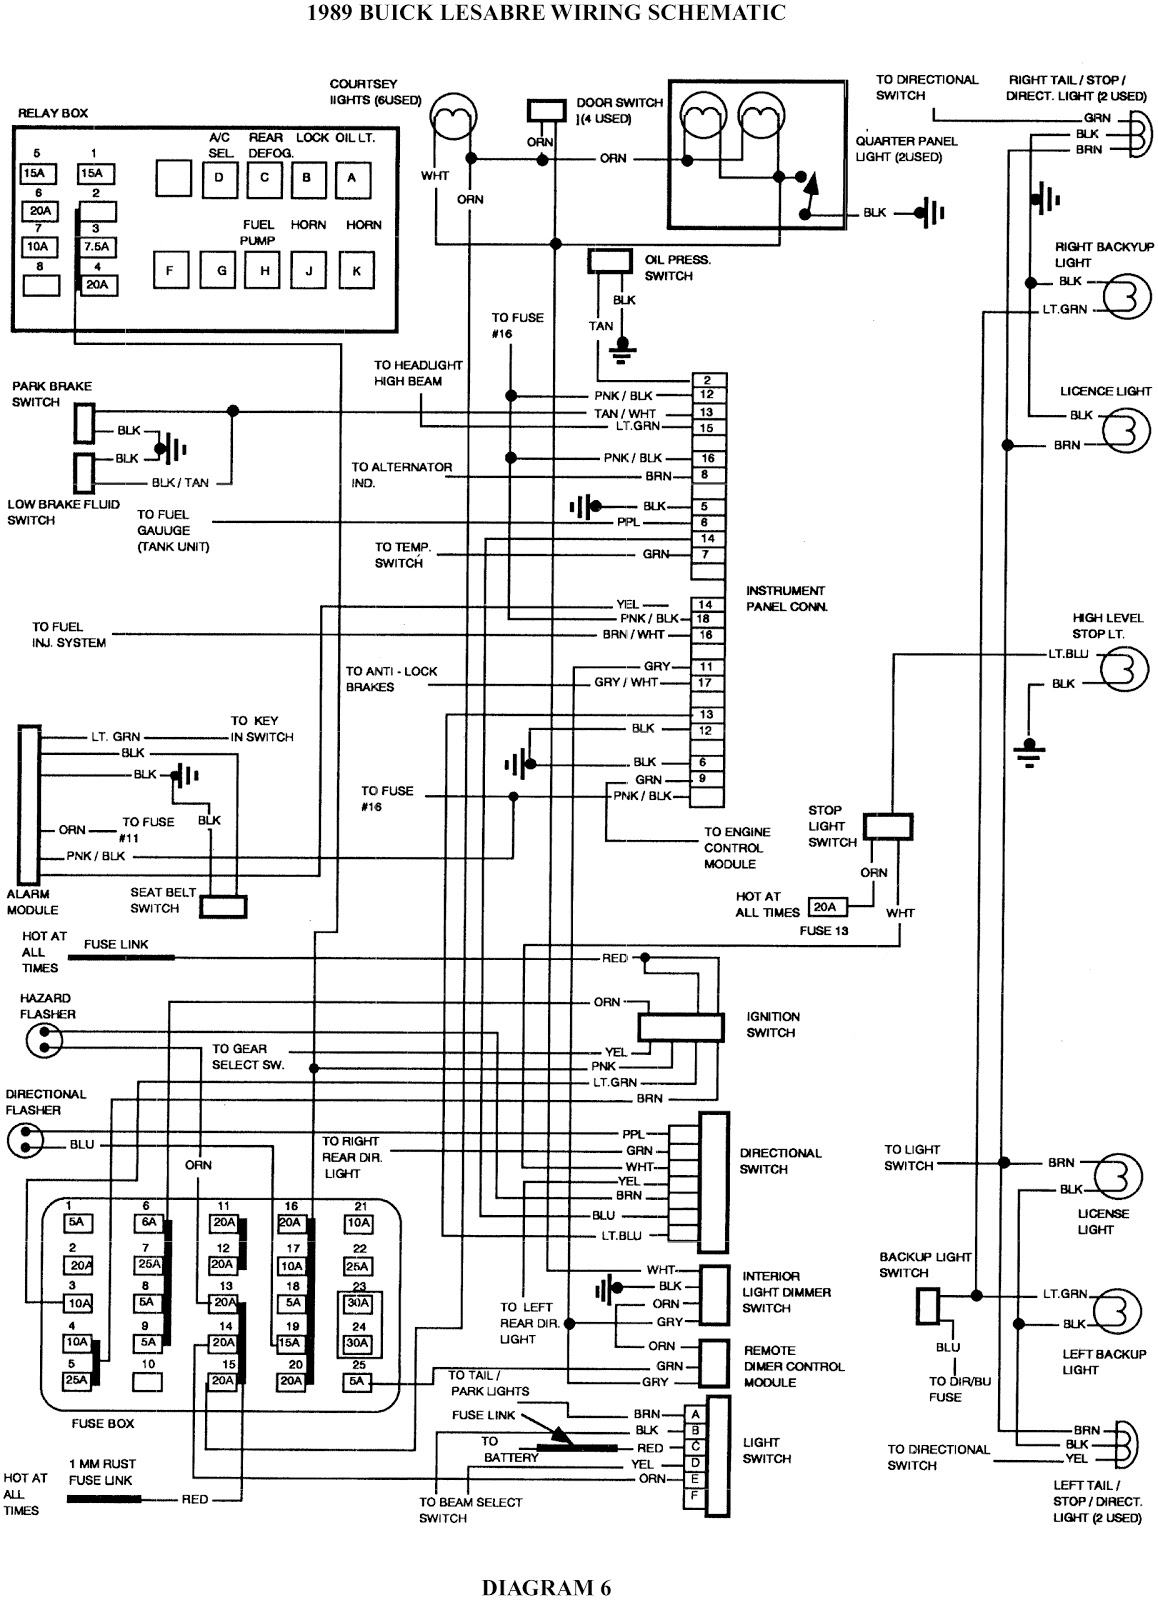 2003 Buick Lesabre Airbag Wiring - Wiring Diagram And Fuse Box